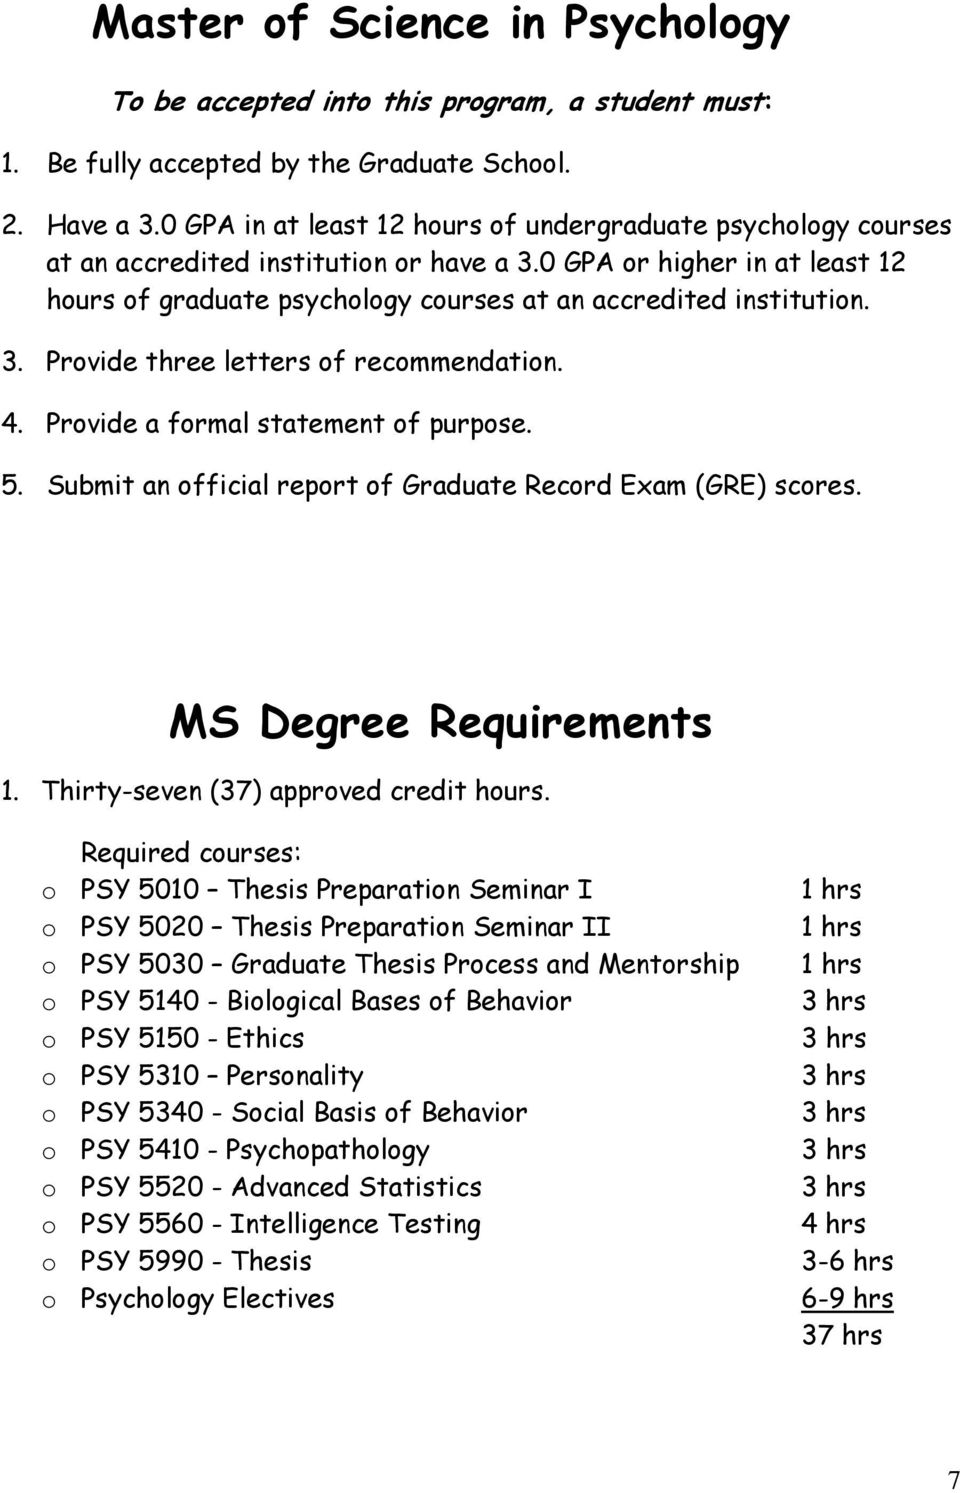 0 GPA or higher in at least 12 hours of graduate psychology courses at an accredited institution. 3. Provide three letters of recommendation. 4. Provide a formal statement of purpose. 5.